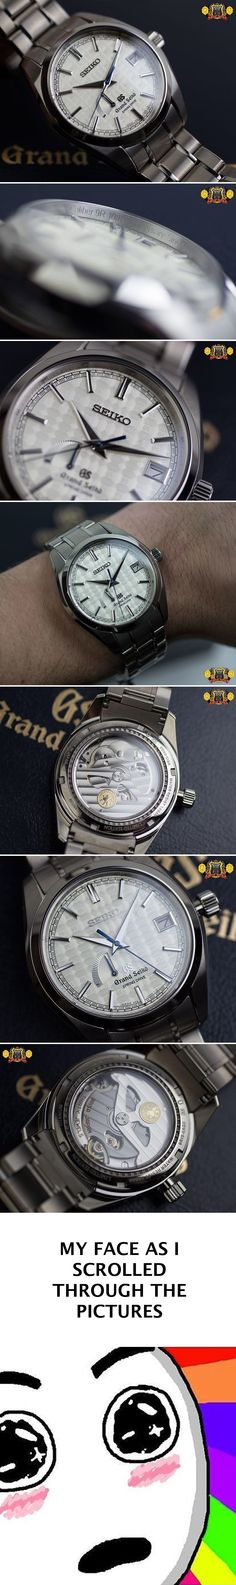 Grand Seiko Spring Drive 9R 10th Anniversary SBGA109, a limited edition model made to honor the 10 year 9R/Spring Drive anniversary. $7,000 [Really beautiful Seiko! Now get that shit on MY WRIST!!!]